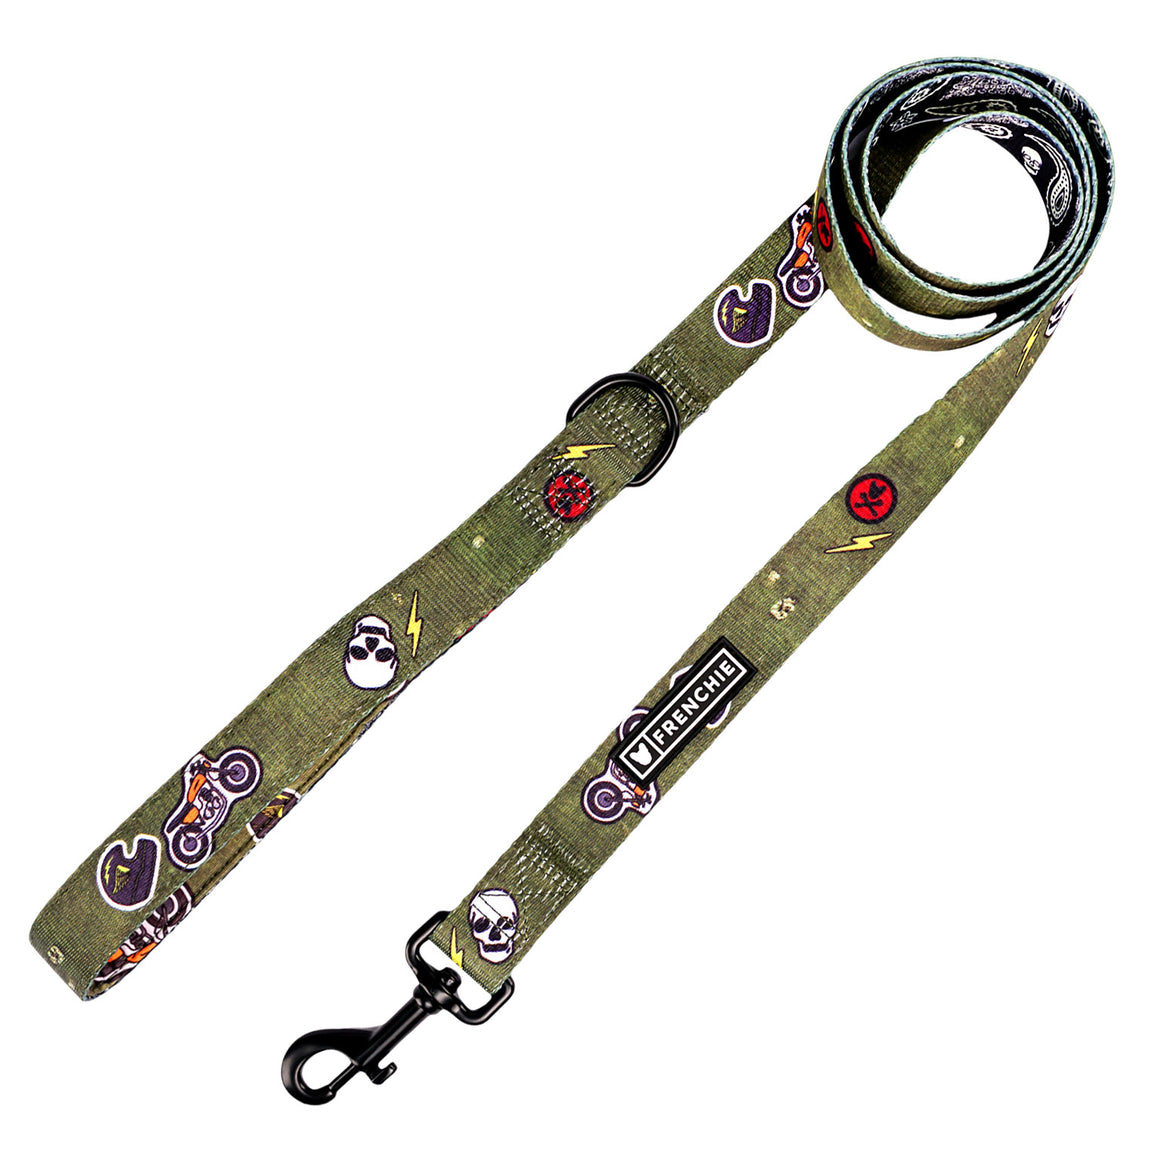 Frenchie Comfort Leash - Ruff Rider - Frenchie Bulldog - Shop Harnesses for French Bulldogs - Shop French Bulldog Harness - Harnesses for Pugs